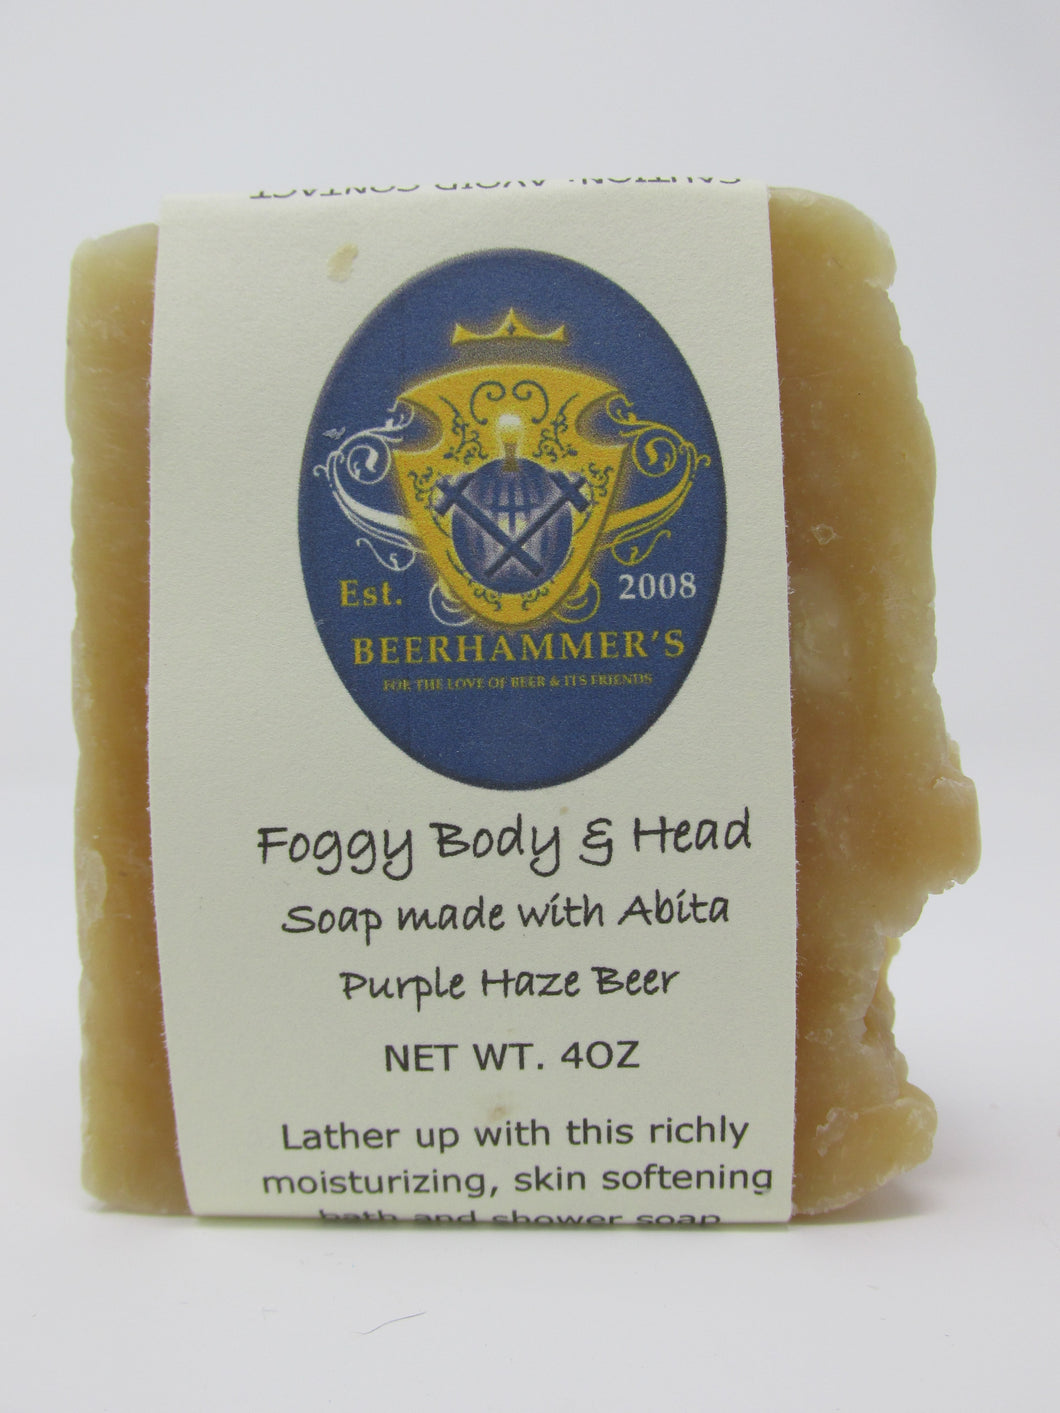 Foggy Body & Head Beer Soap with Abita Purple Haze